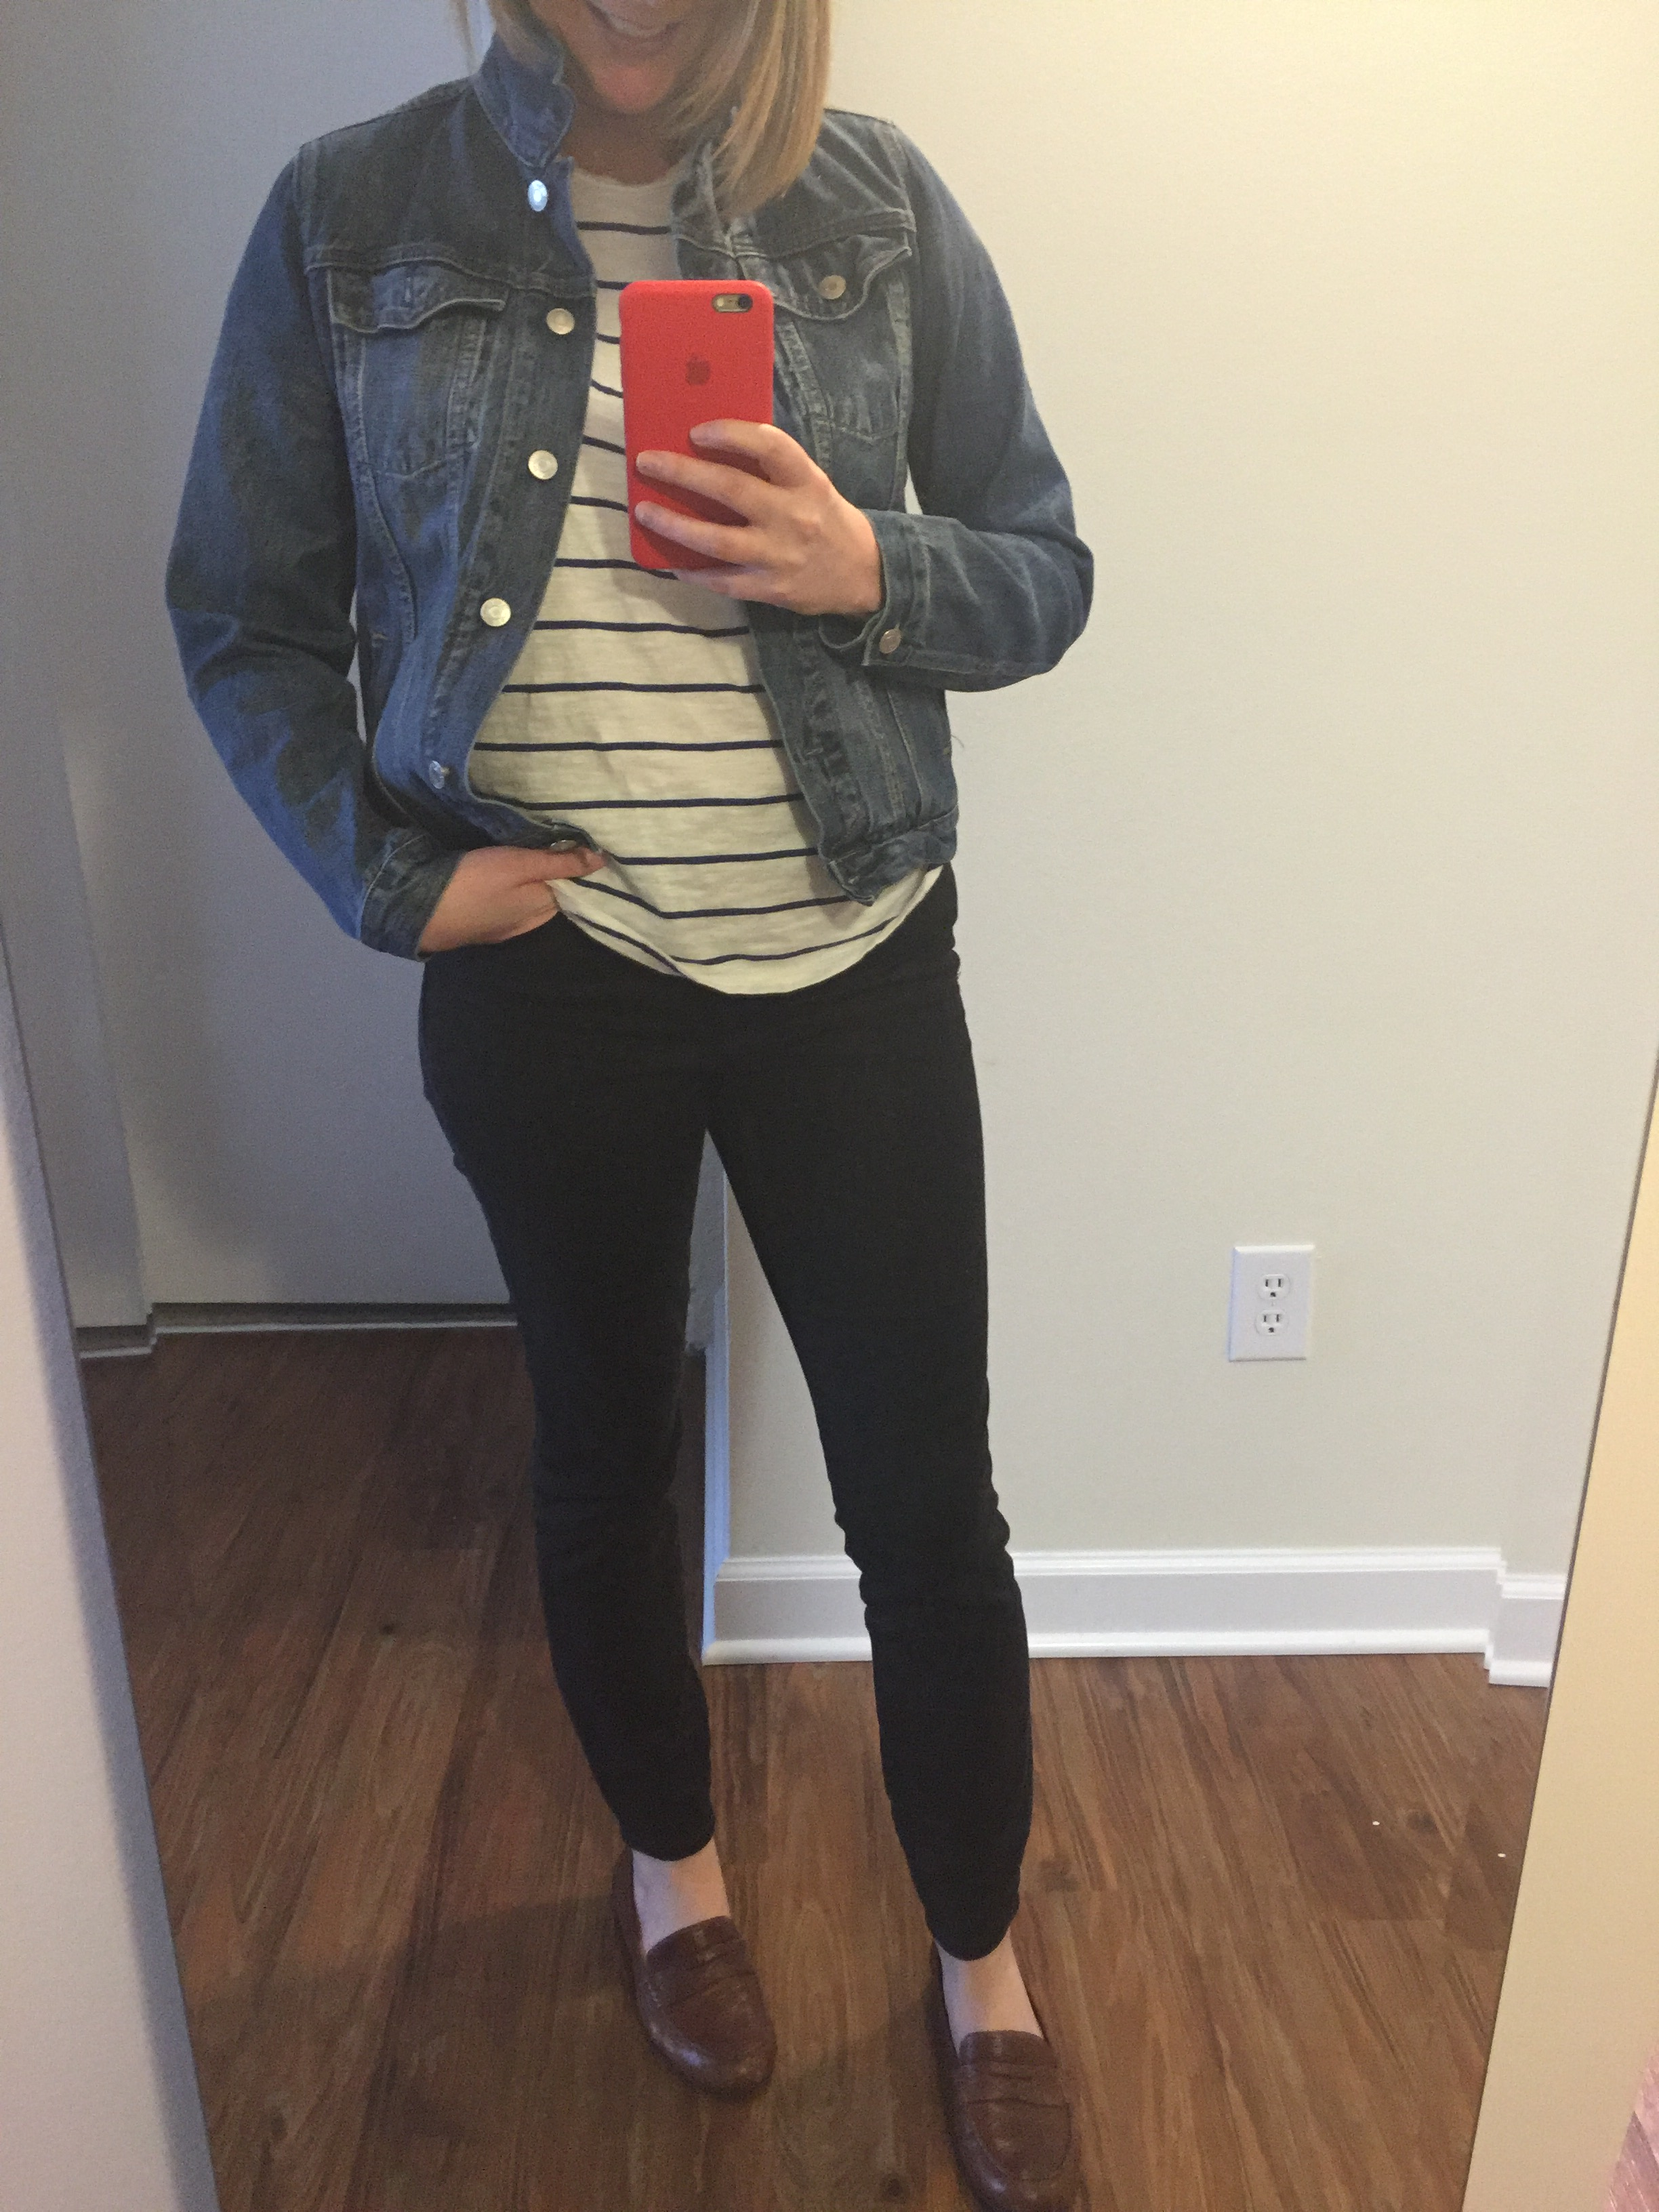 Jacket: Gap,  1969 denim jacket , Tee: Madewell,  whisper cotton crewneck , Jeans: Madewell,  high riser skinny skinny ,  Loafers: Born, Dinah Penny Loafer